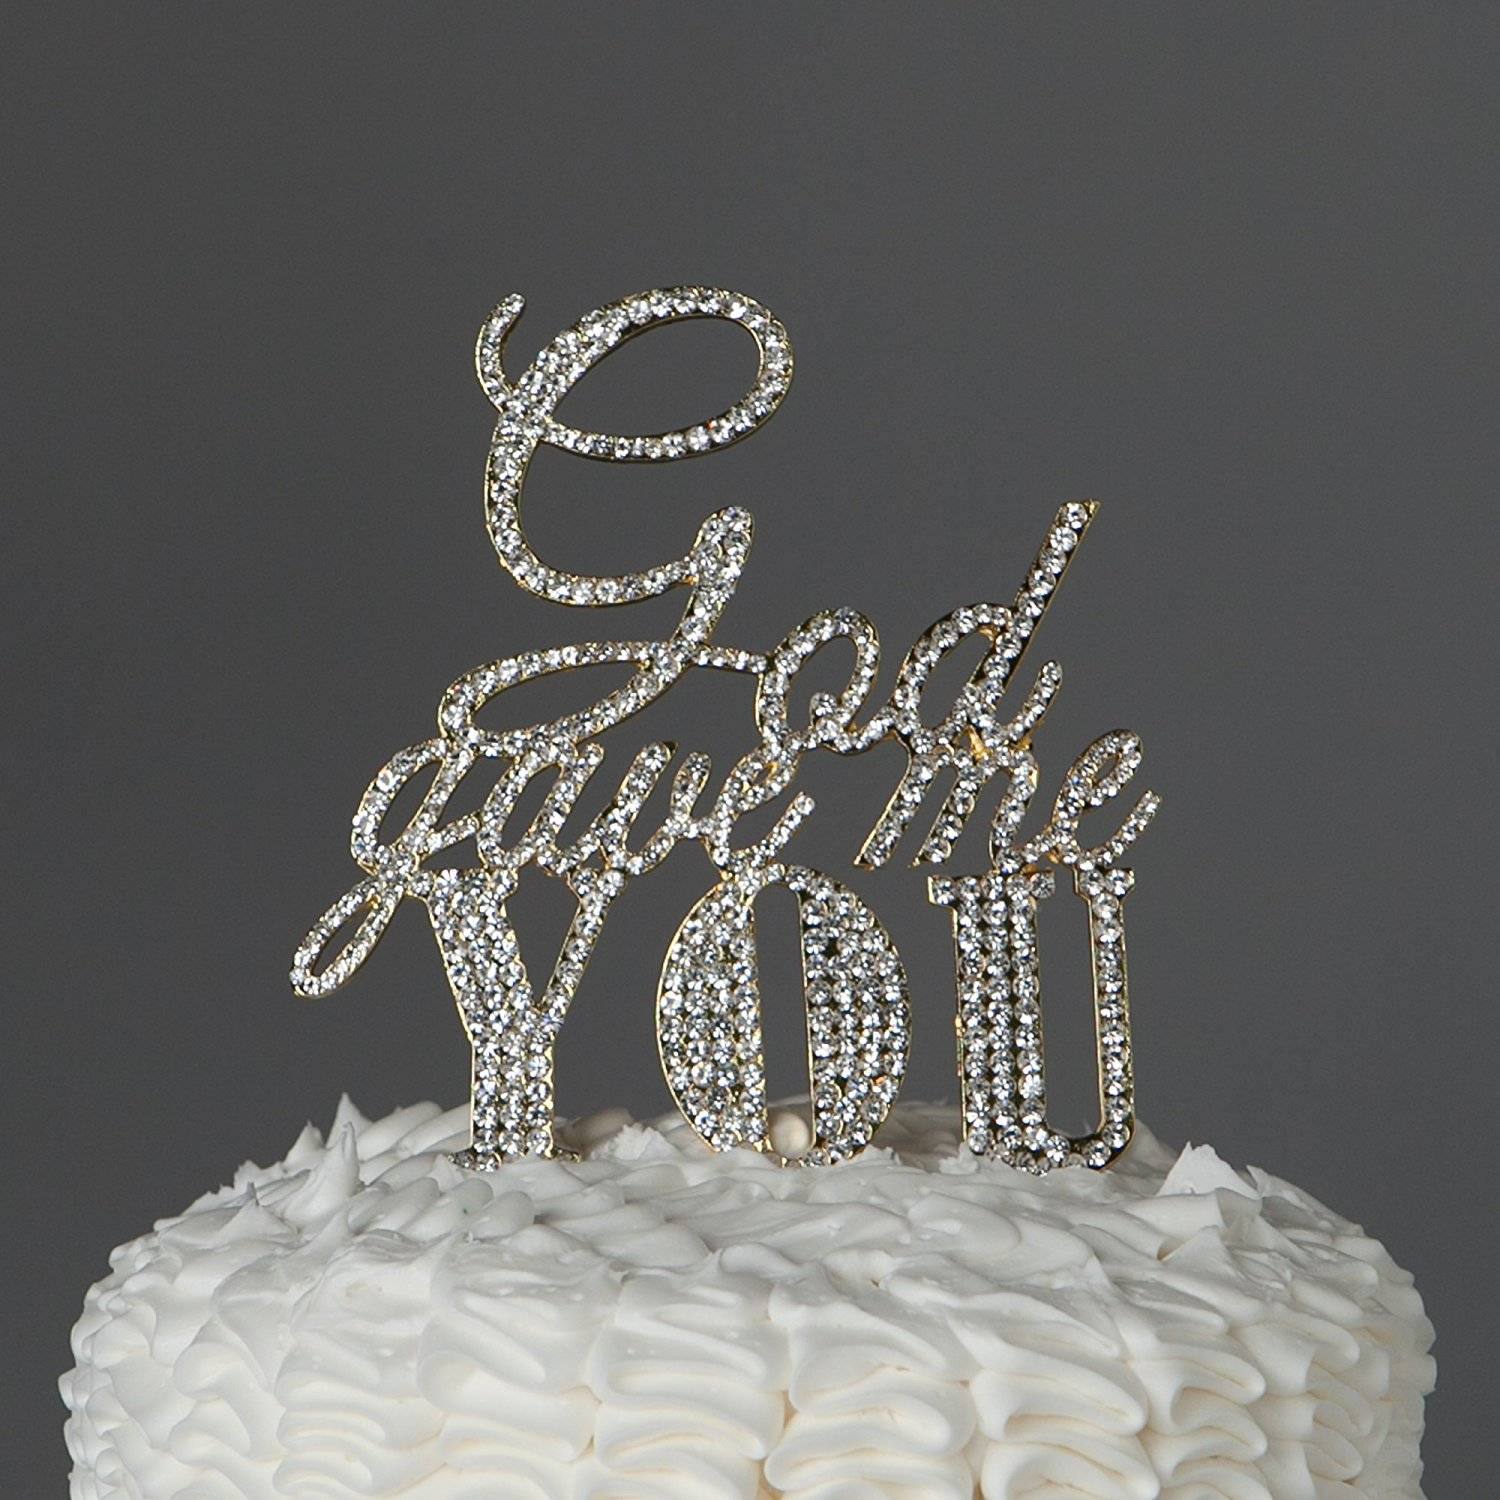 God Gave Me You Cake Topper for Wedding or Anniversary, Gold Religious Christian Party Decoration